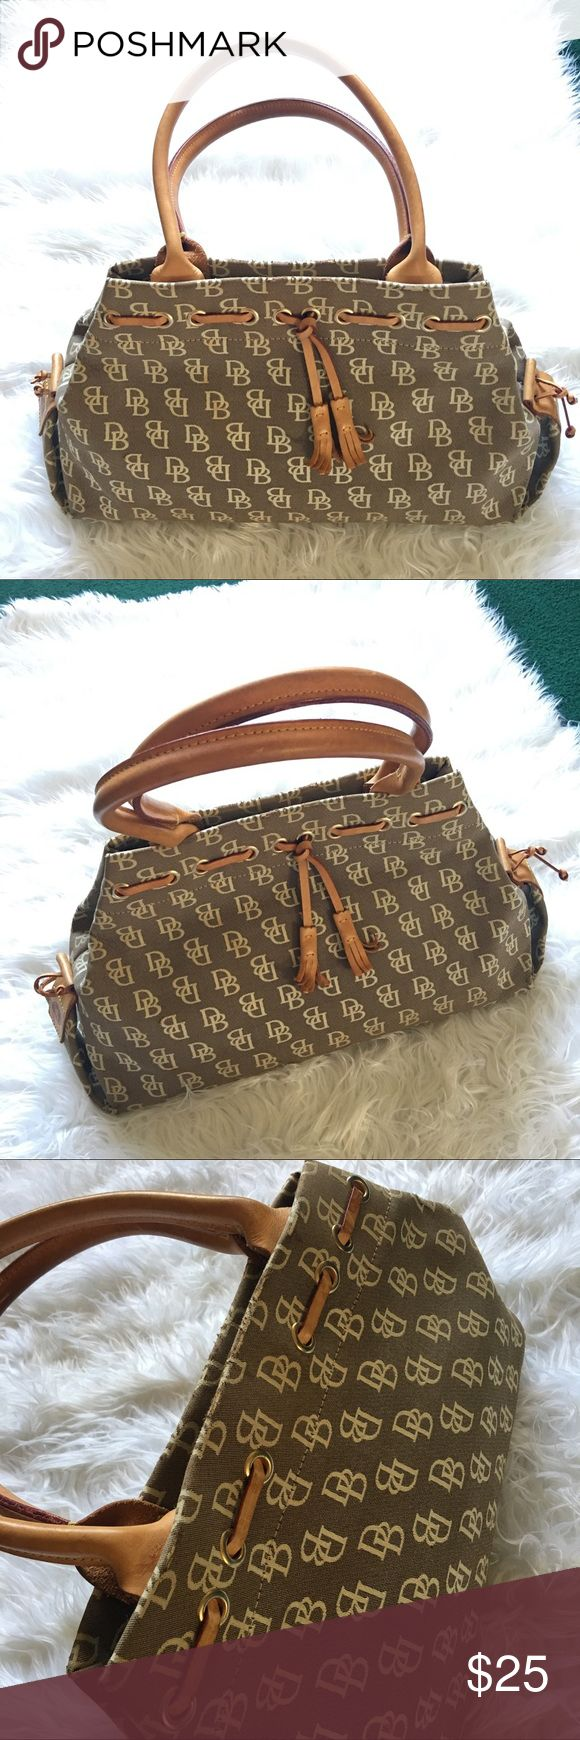 Dooney & Bourke Monogramed Tan Cream Shoulder Bag Beautiful bag by Dooney & Bourke! Corner damage and minor staining shown in the photos. Please offer or ask any questions! Dooney & Bourke Bags Shoulder Bags